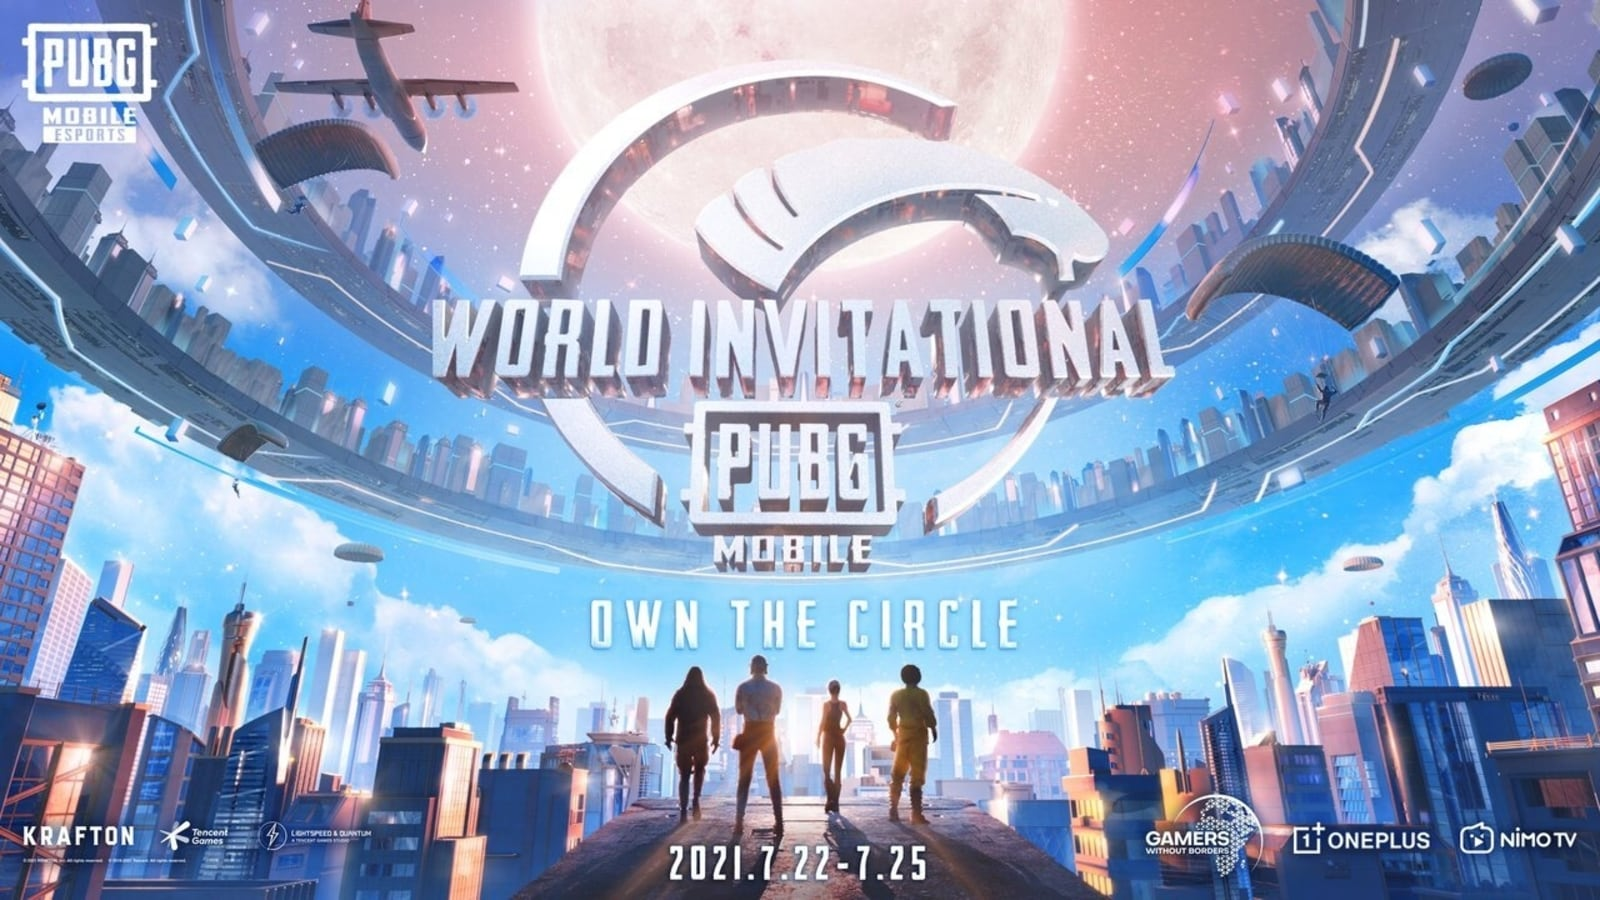 When PUBG Mobile World Invitational was announced in 2021, there is a $ 3 million charity prize